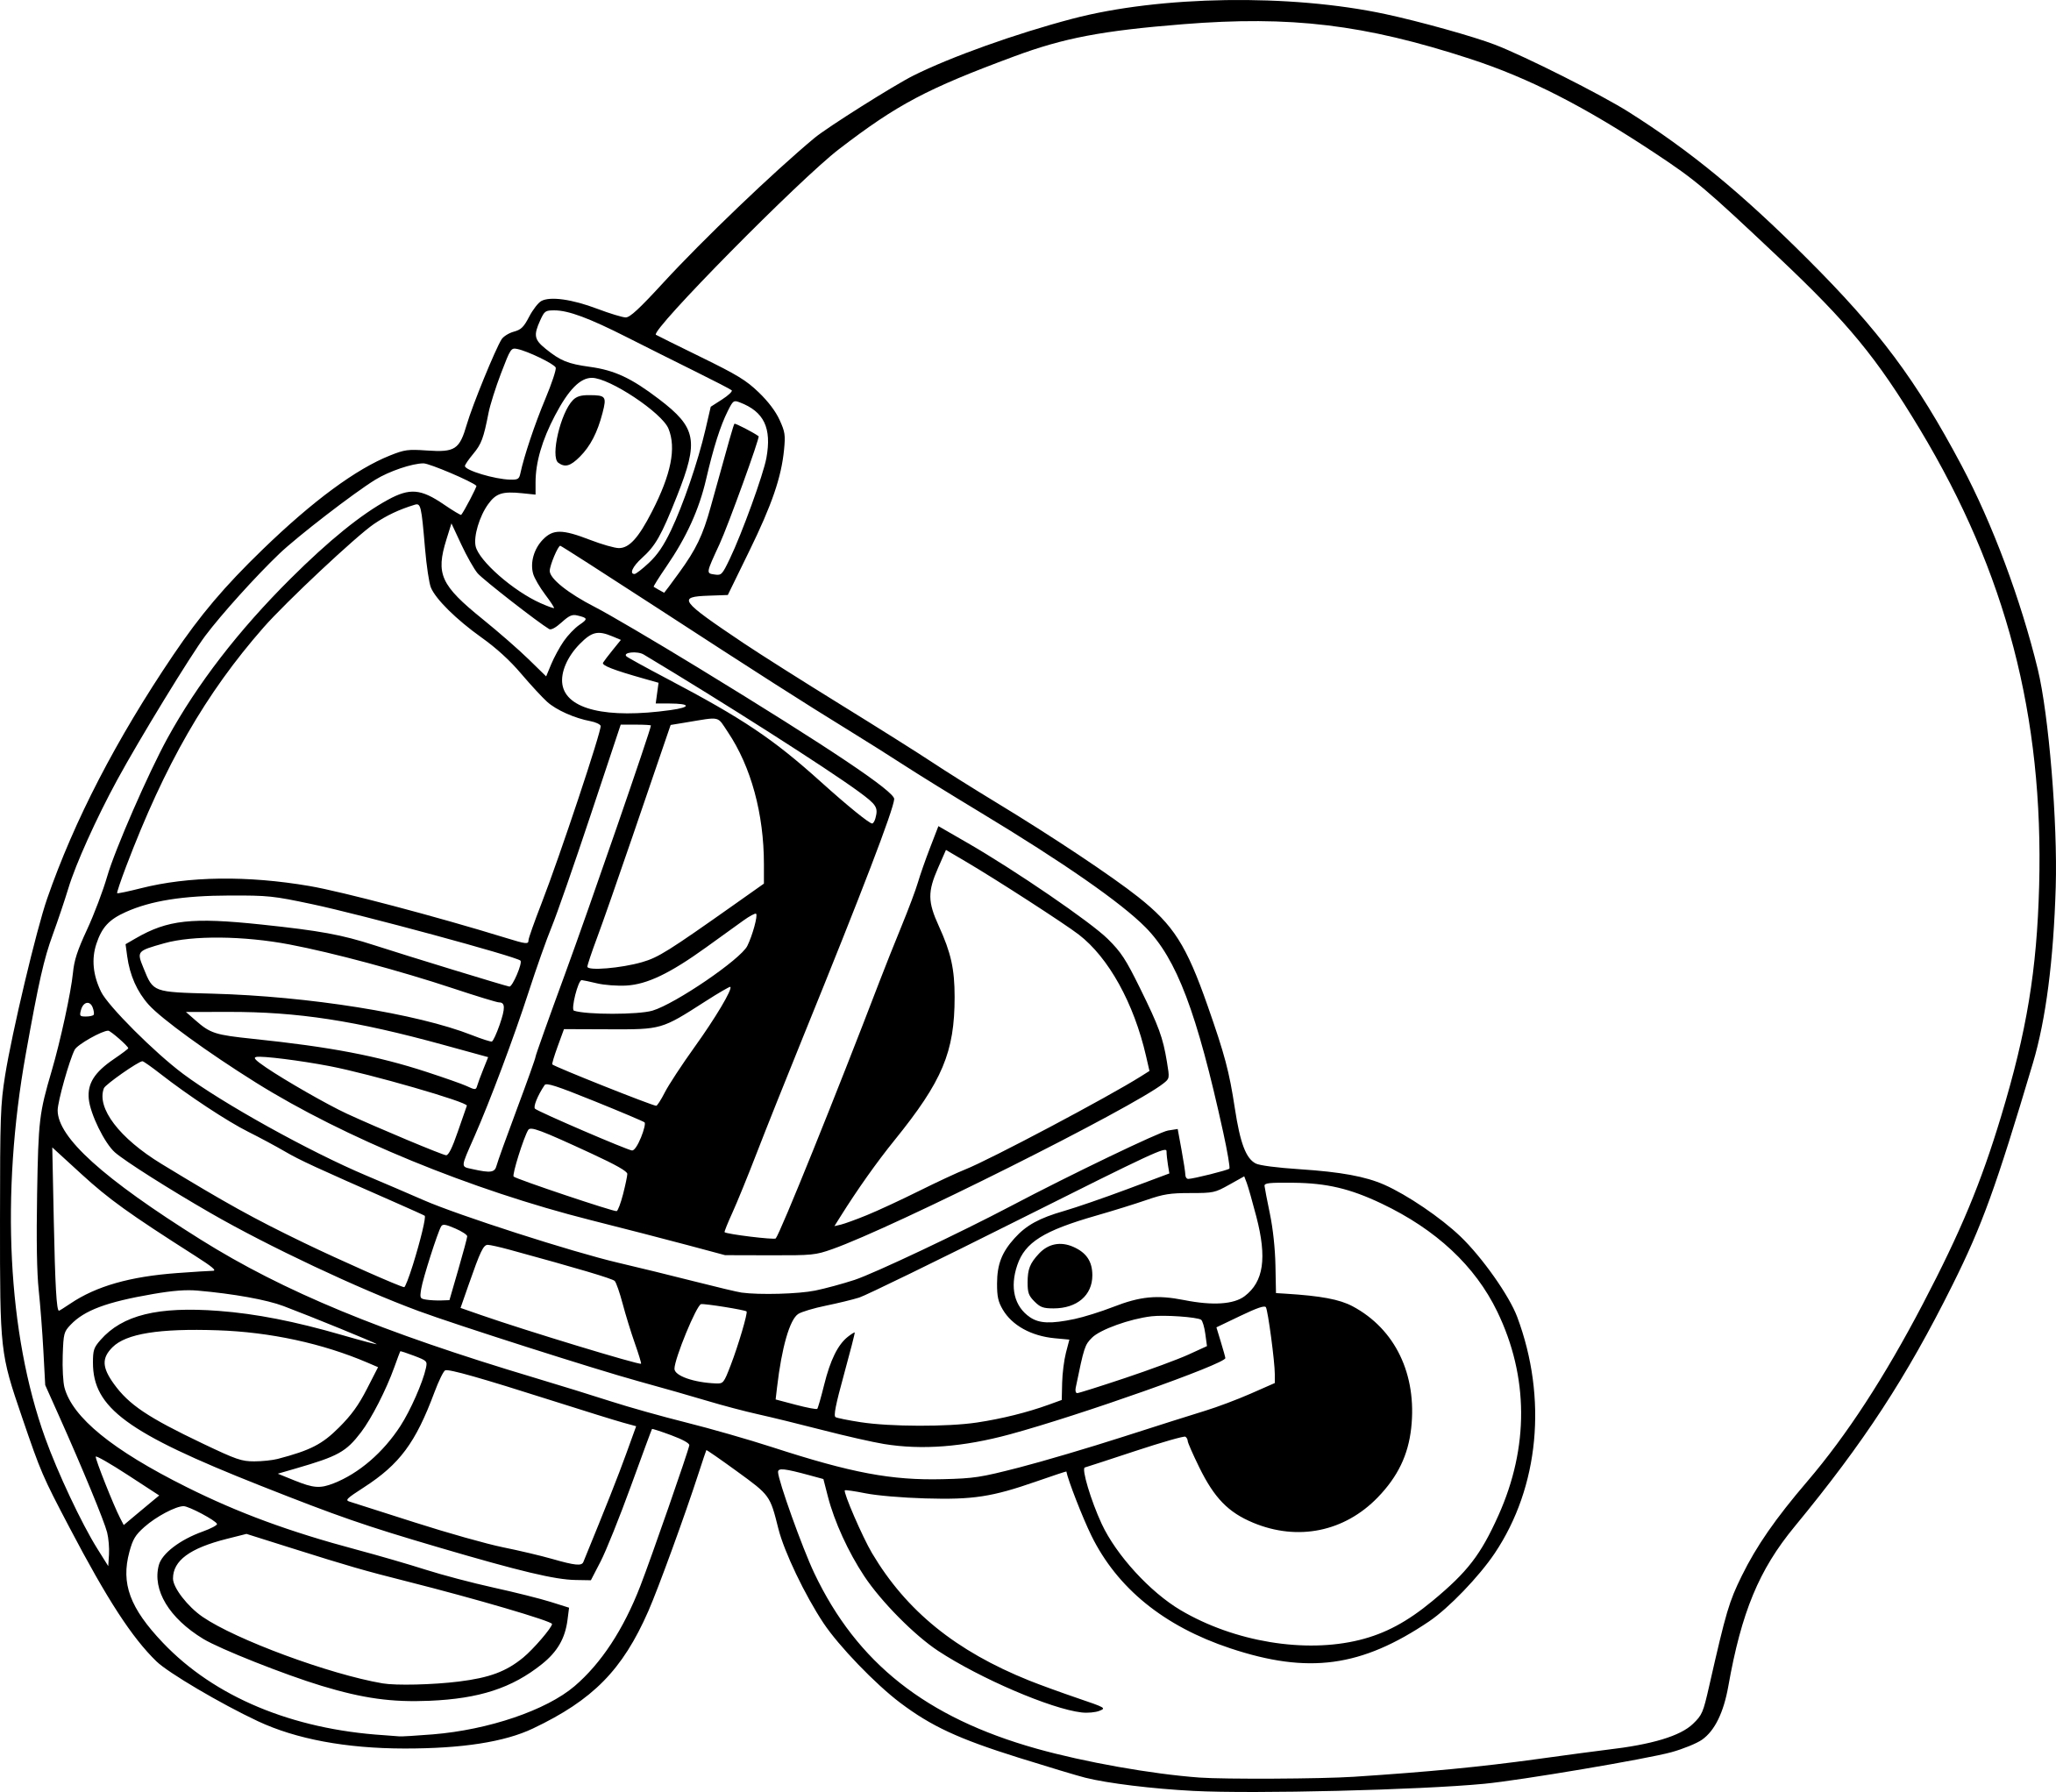 Coloriage casque football americain